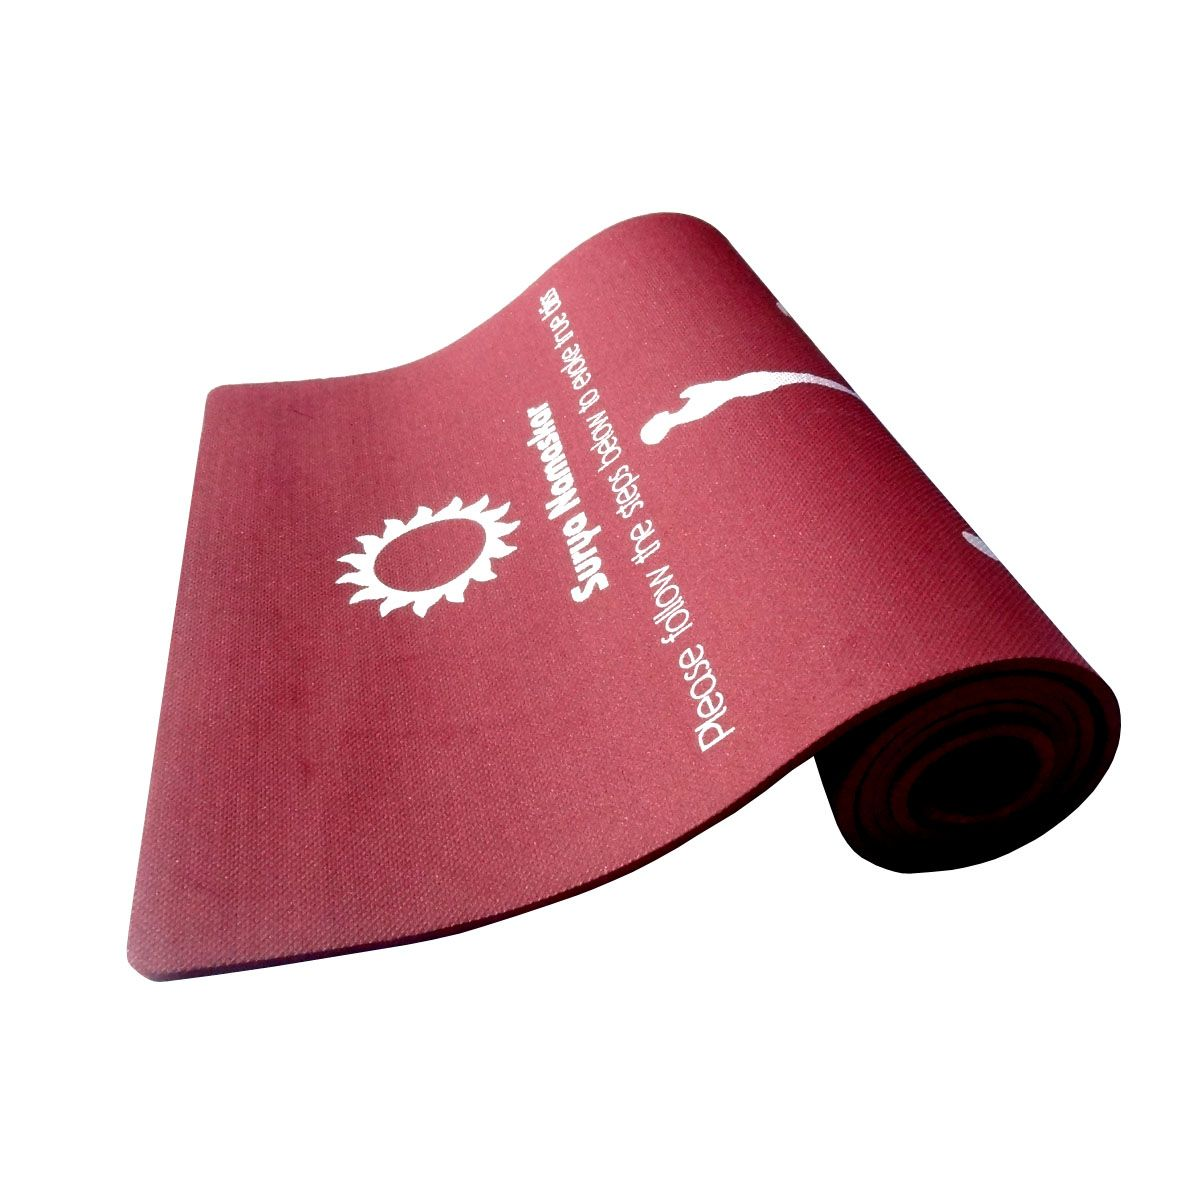 Yoga Mats Exporter In India Looking For The Best Yoga Mats